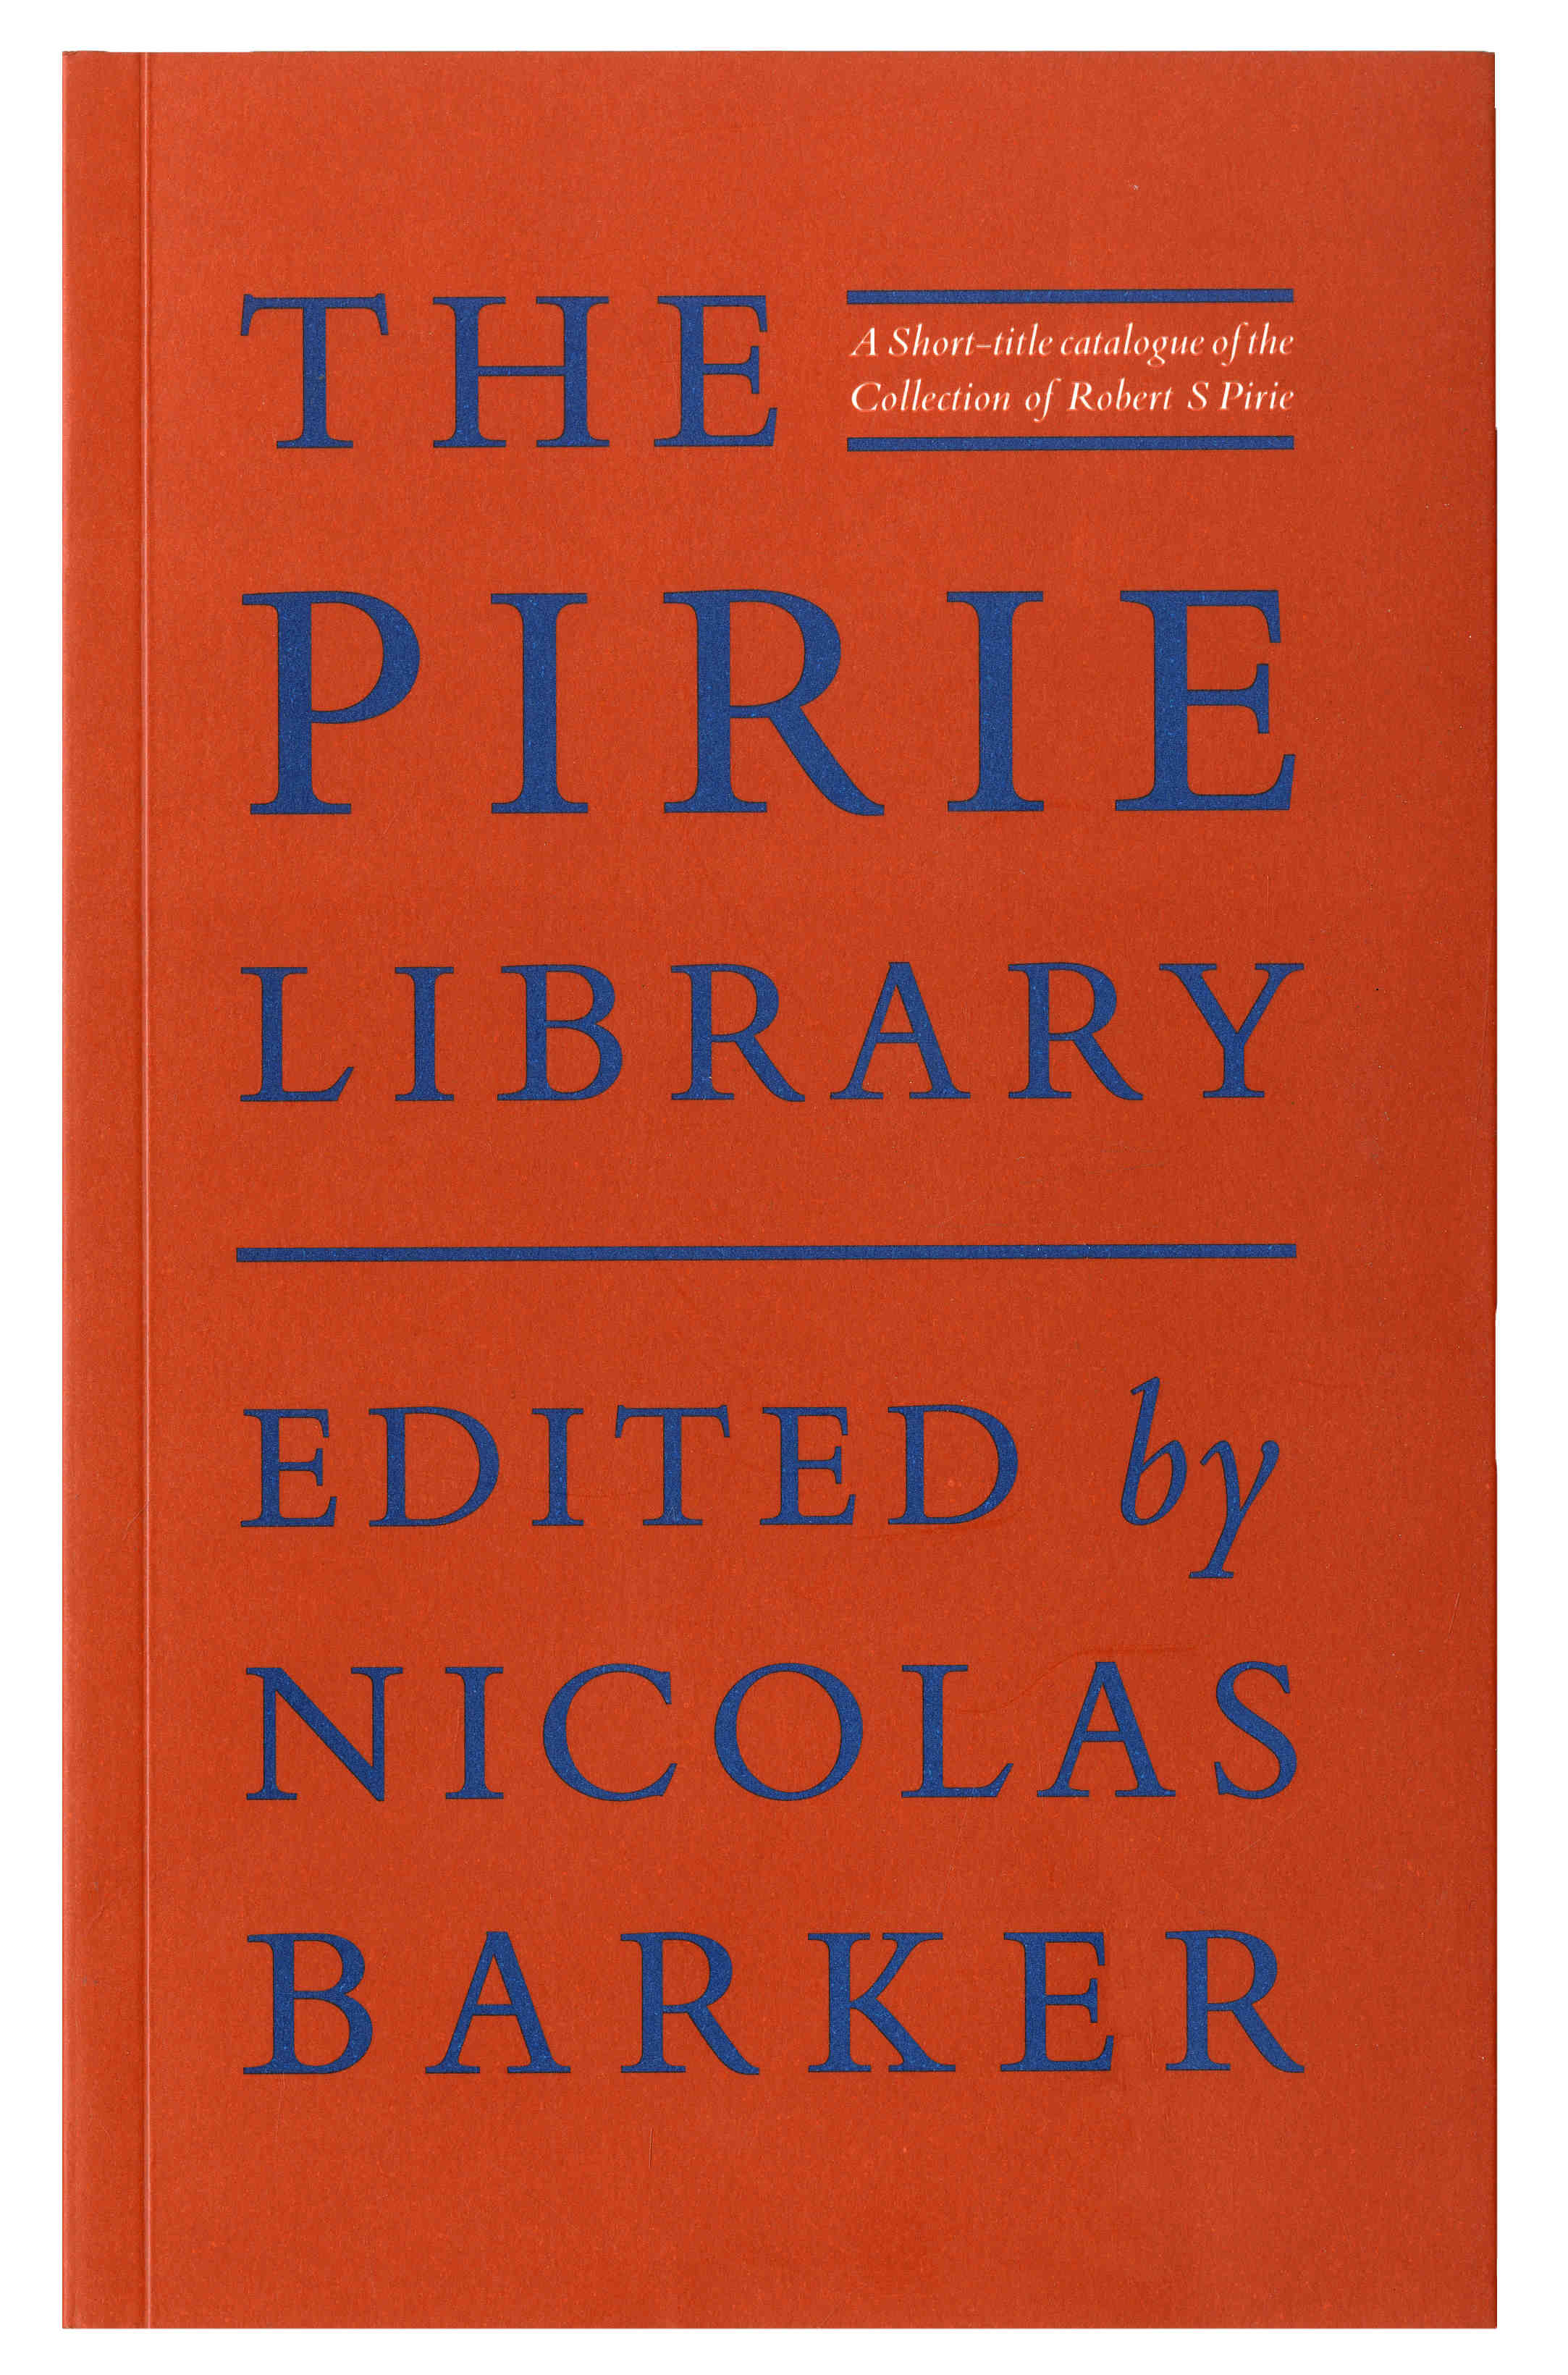 The Pirie Library. A Short-Title Catalogue of the Collection of Robert S Pirie.